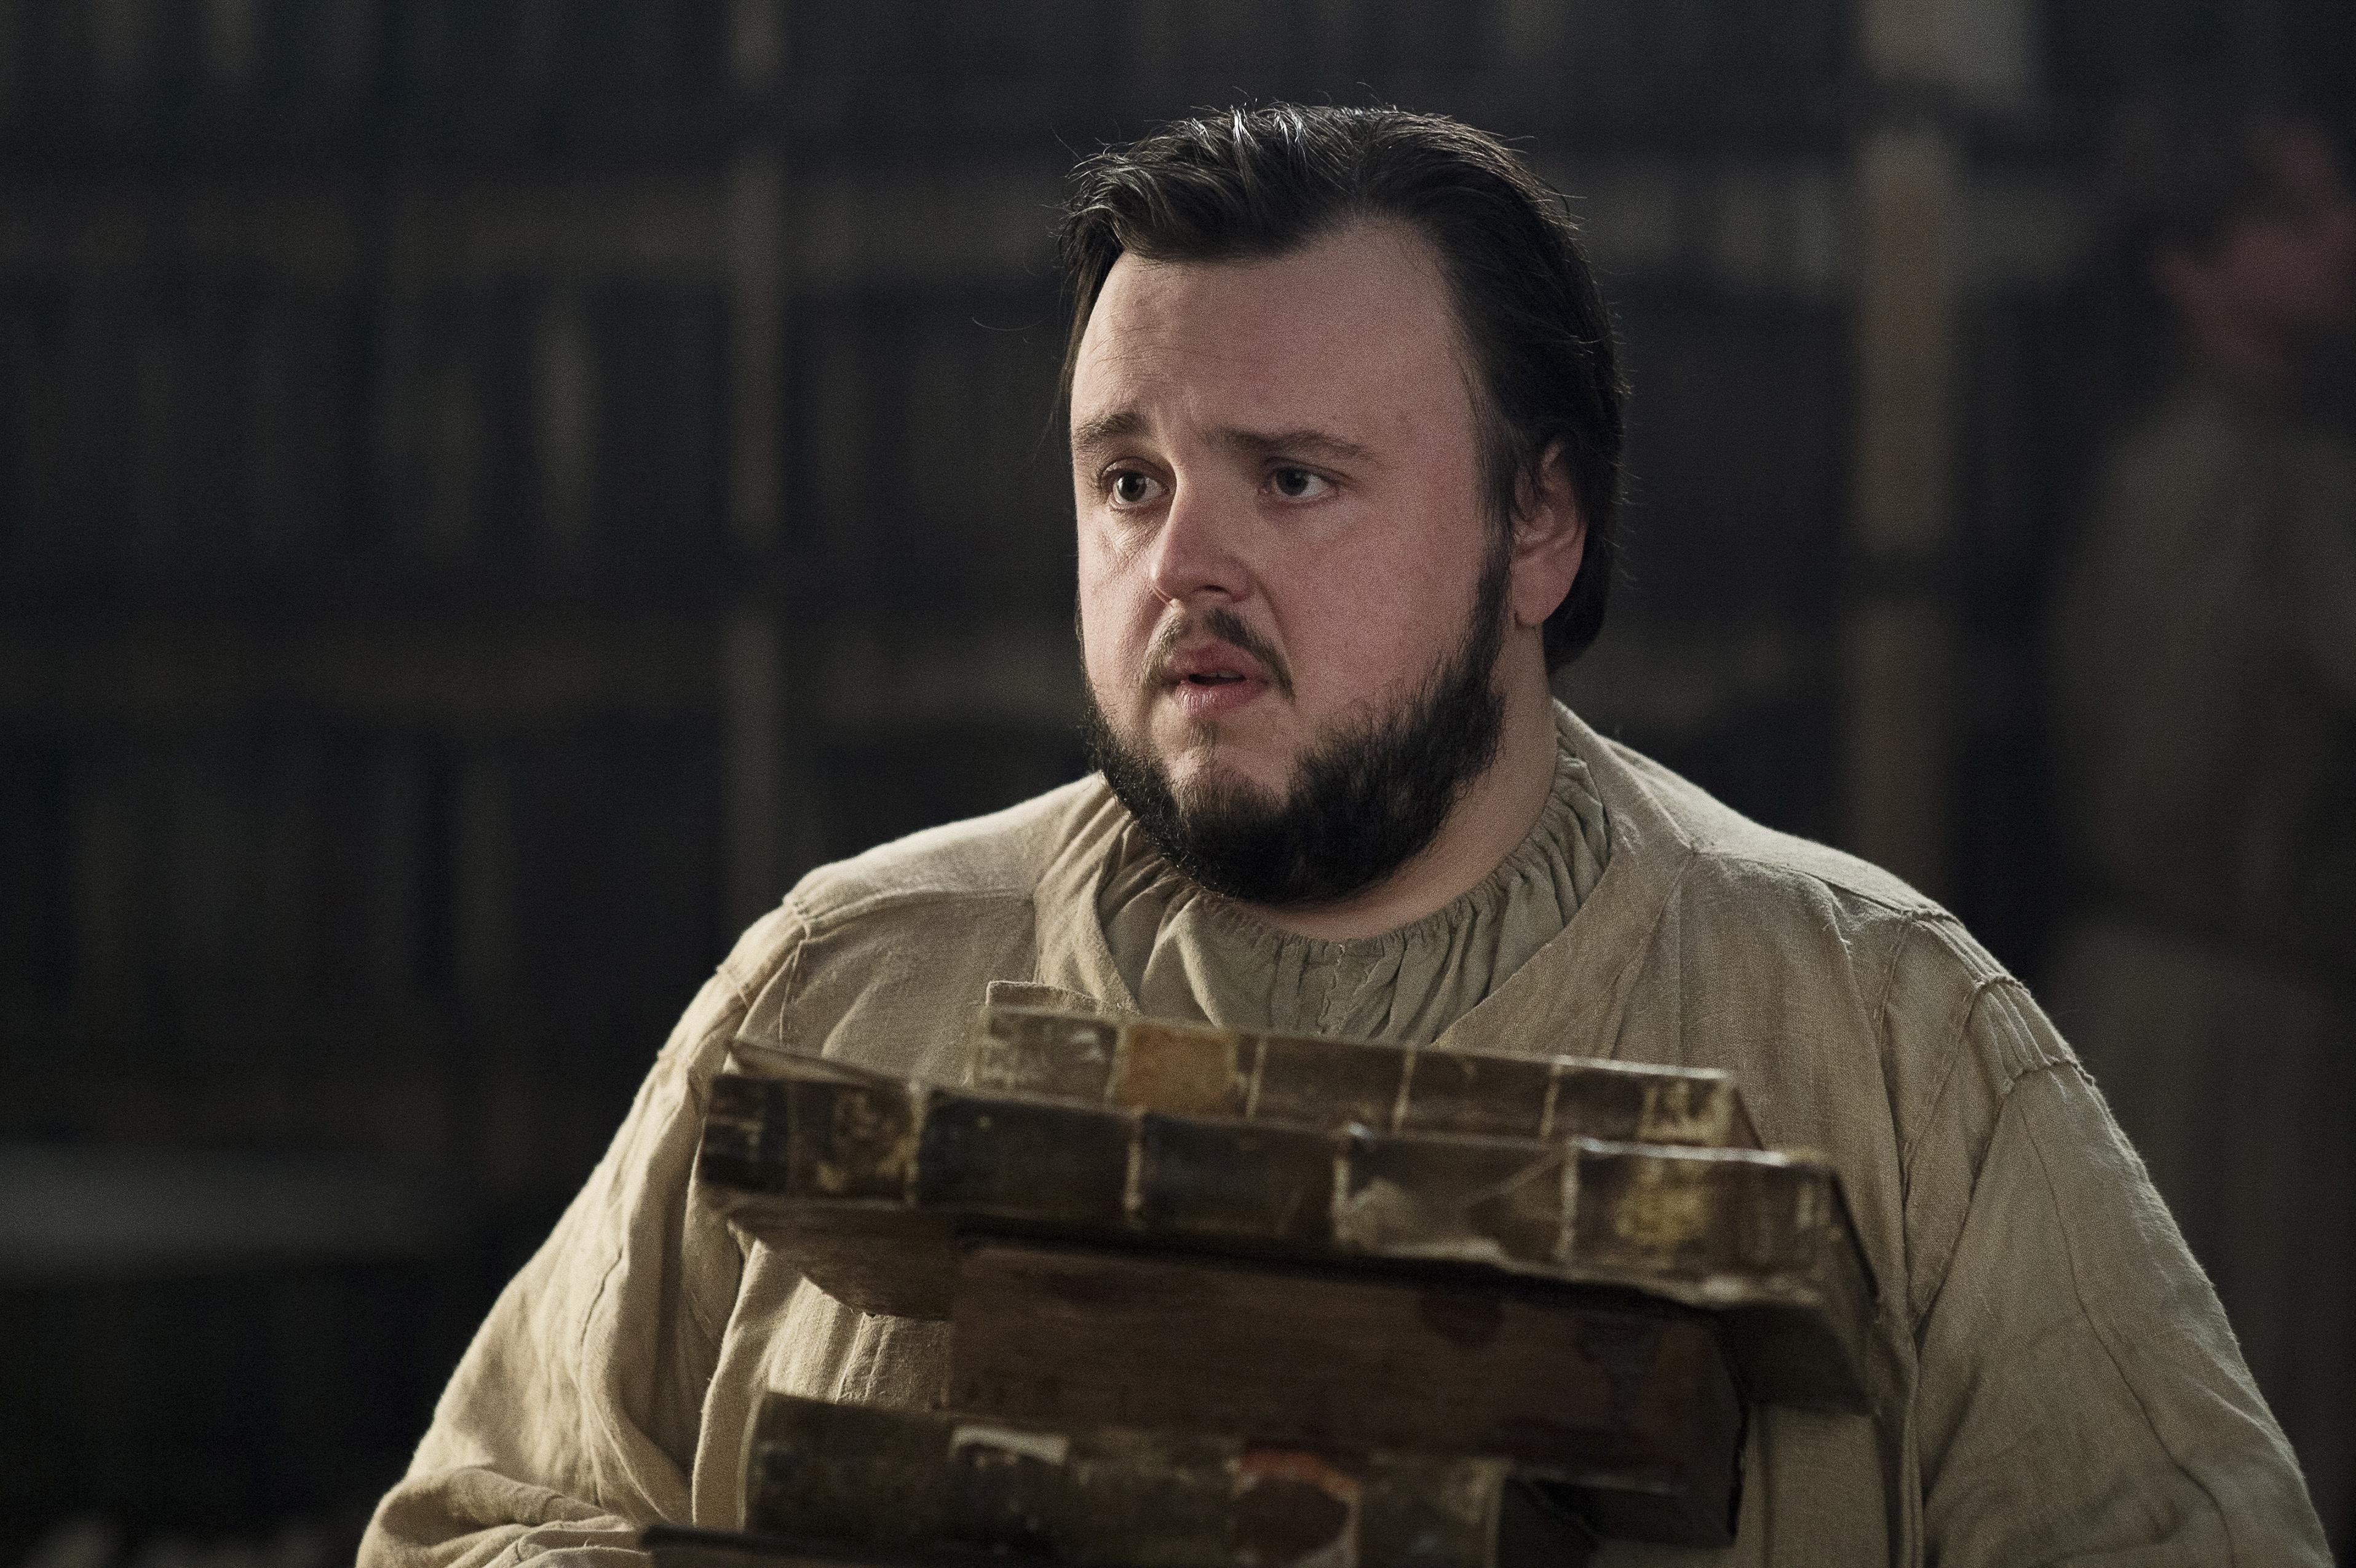 Game of Thrones Made It Abundantly Clear Why Real Medieval Libraries Chained Their Books